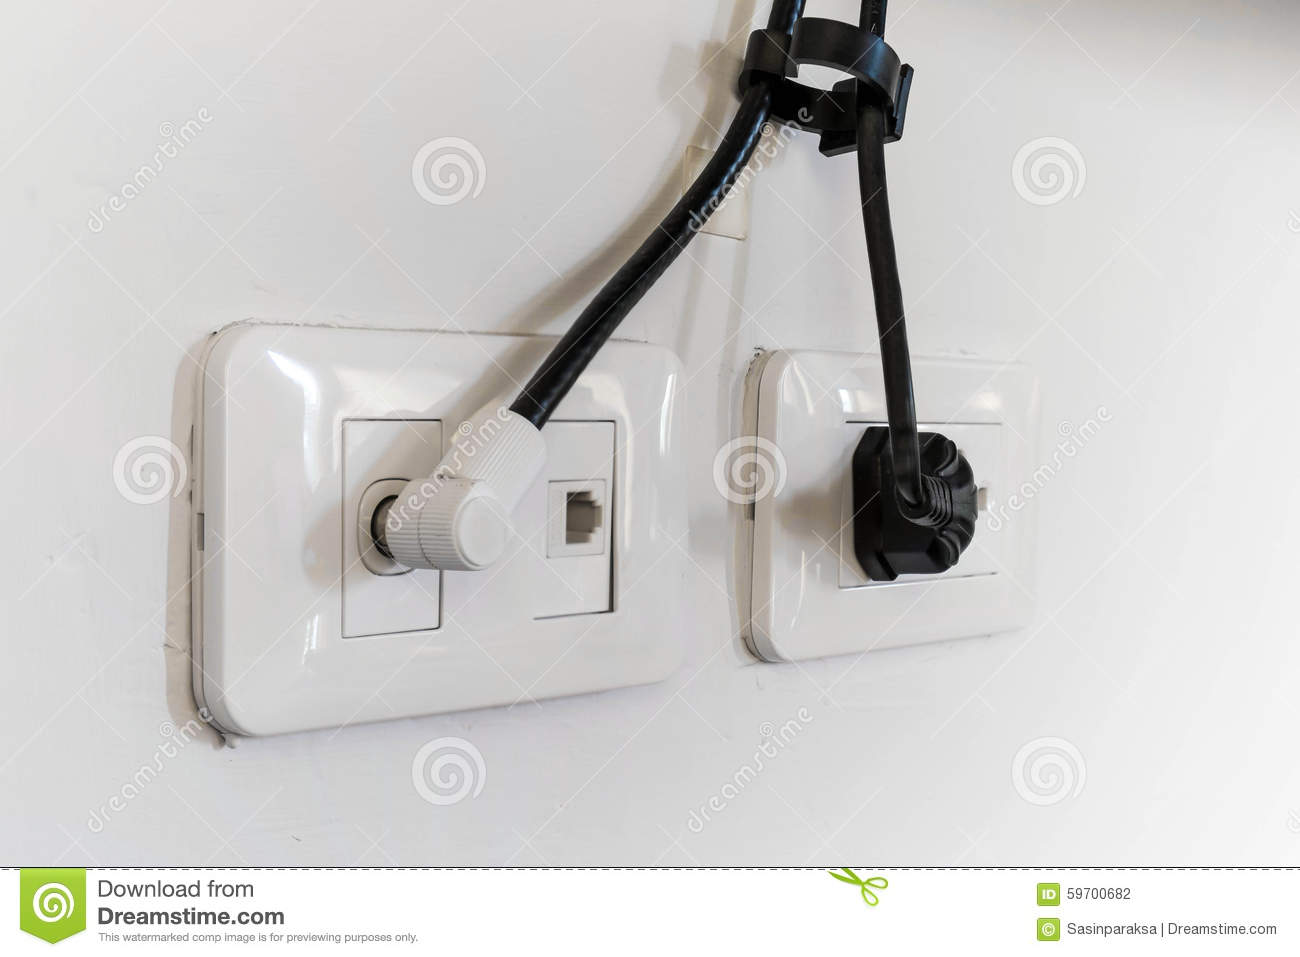 Electrical Plug And TV Signal Outlets Stock Photo - Image of charge ...